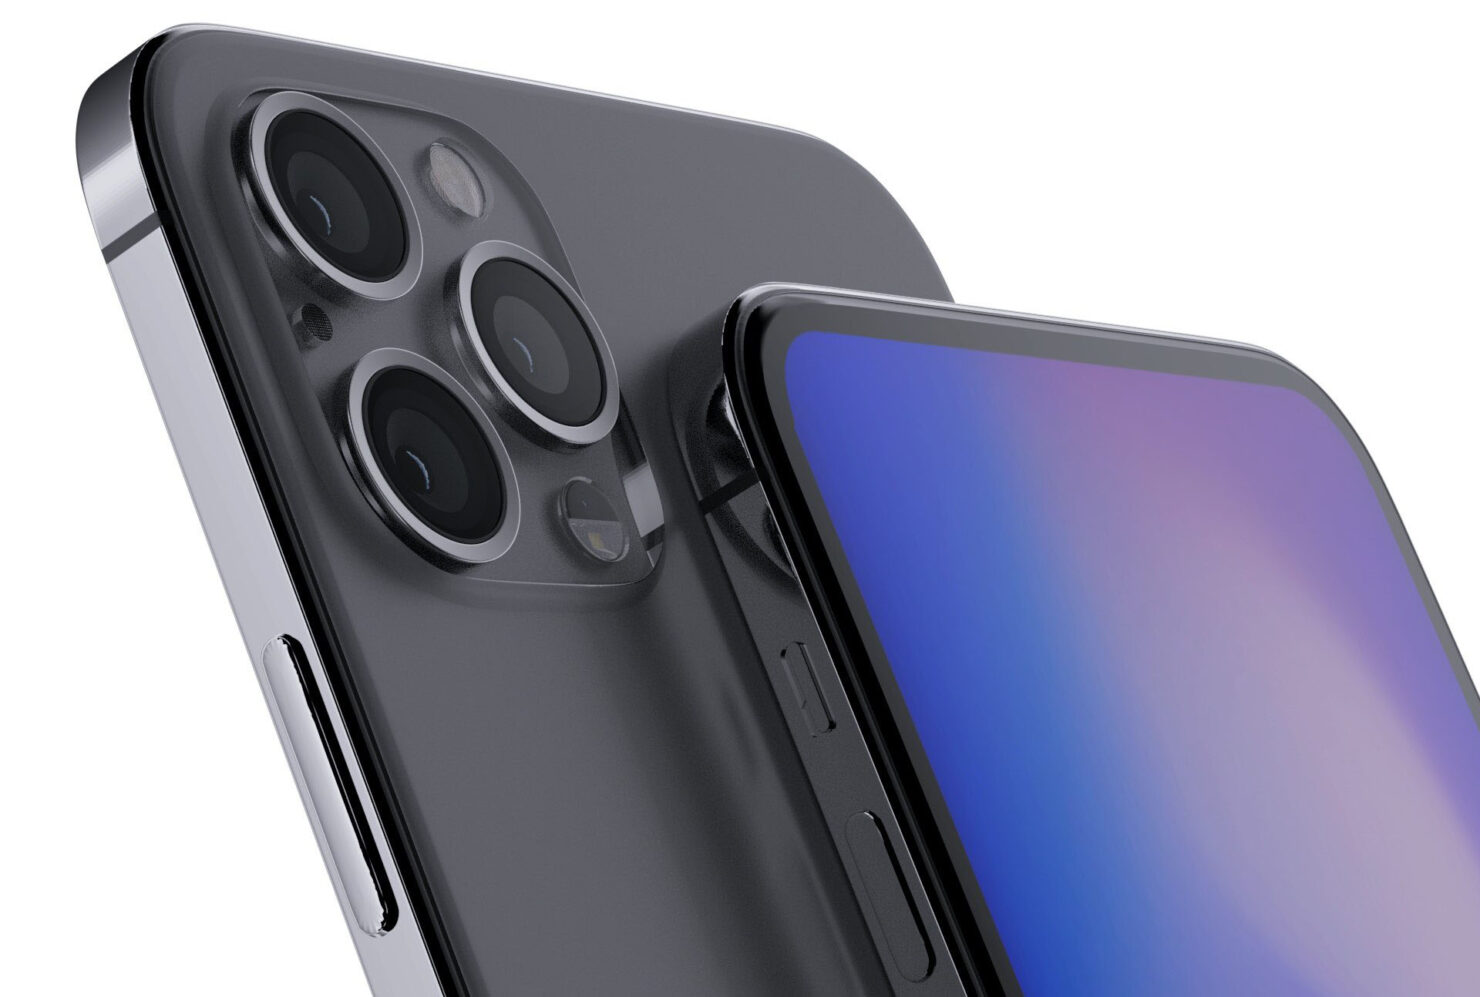 iPhone 12 Specs Rumored to Include 6GB RAM, 3D Camera, 5G & More